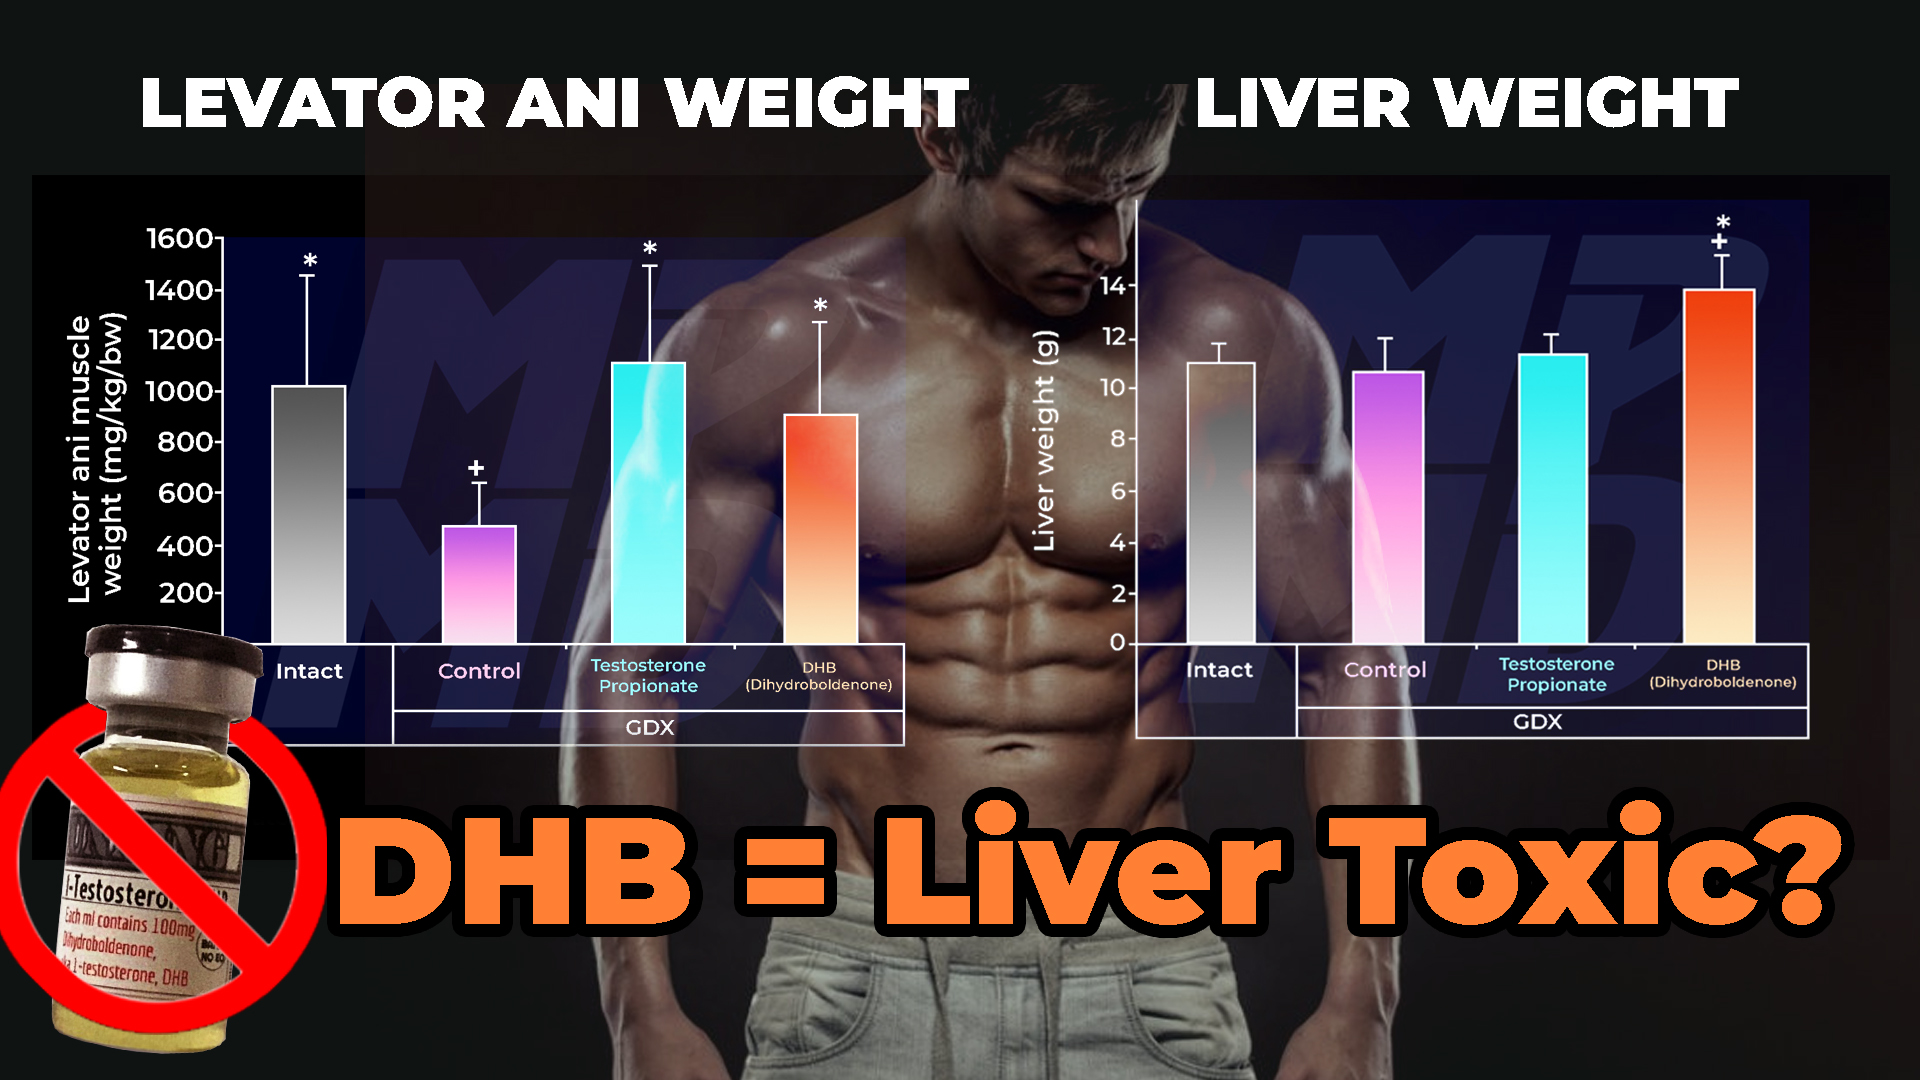 Bottle Of DHB (Dihydroboldenone) Beside Charts Depicting The Effects Of Testosterone Propionate and DHB (Dihydroboldenone) on Levator Ani Muscle Weight in orchiectomised rats and the Effects Of Testosterone Propionate and DHB (Dihydroboldenone) on Liver Weight in orchiectomised rats